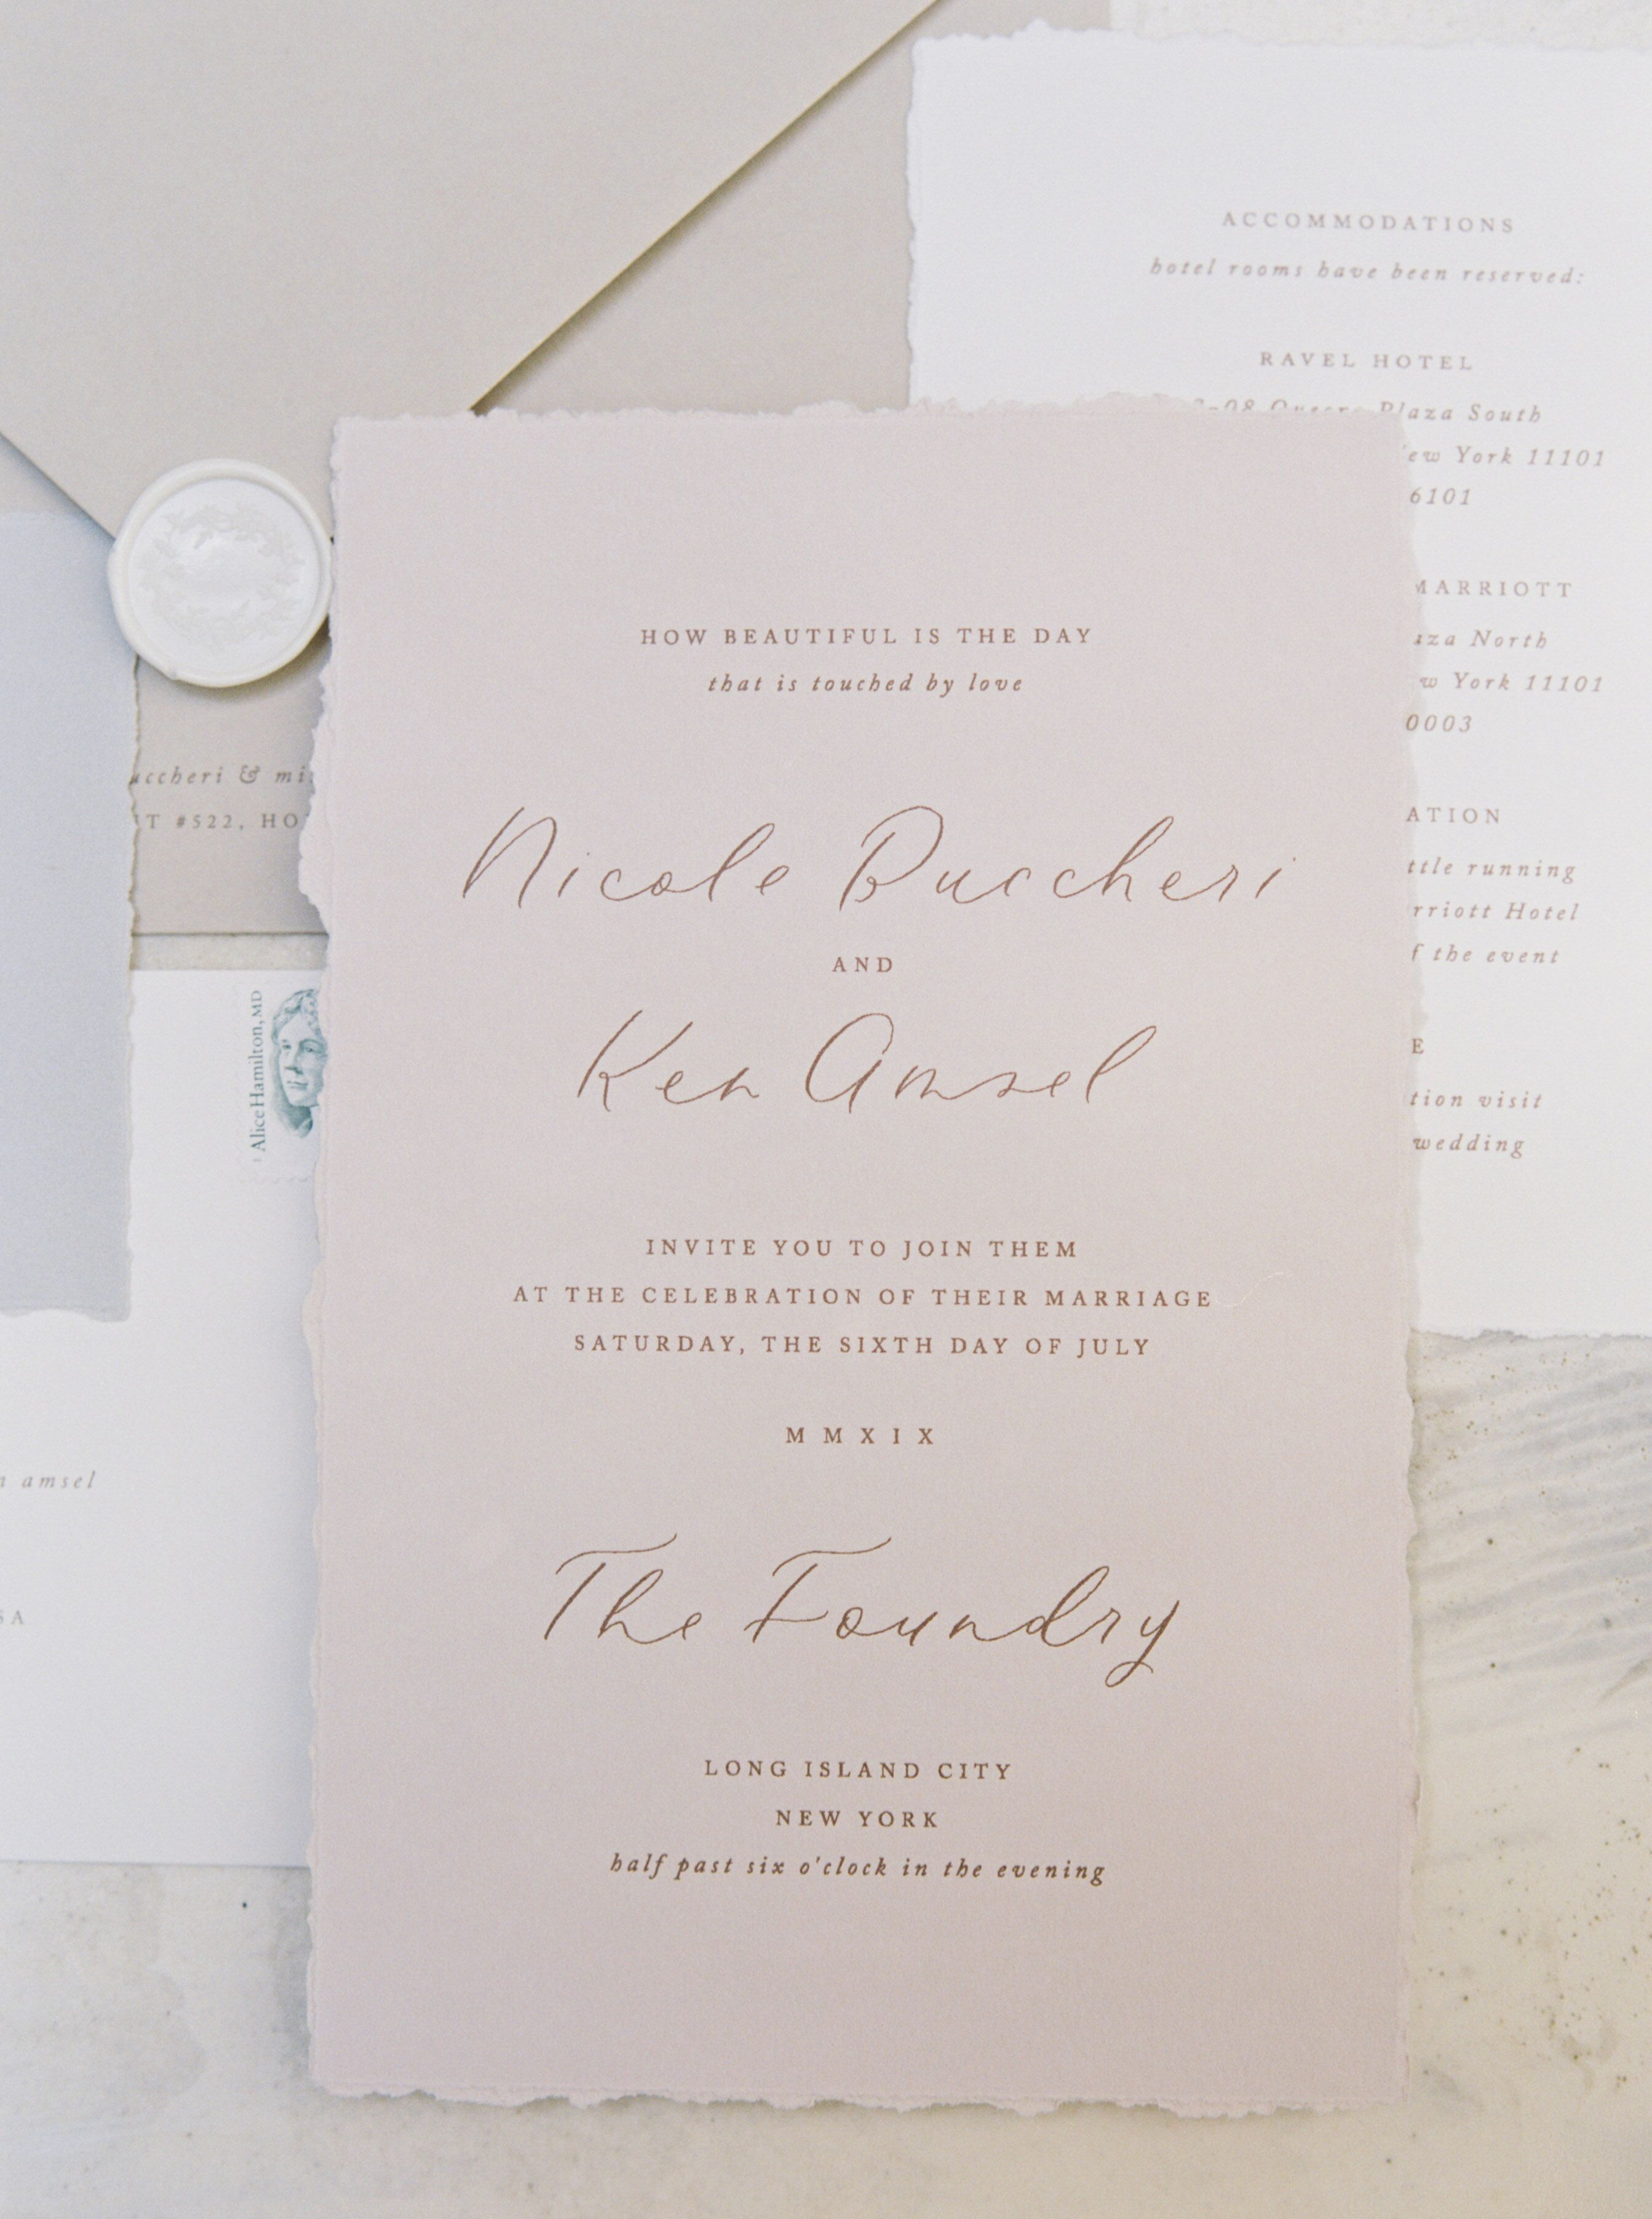 Romantic Nyc Wedding Invitations At The Foundry In New York City Dream Turned Reality By Flor Wedding Cards Wedding Stationery Inspiration Wedding Invitations